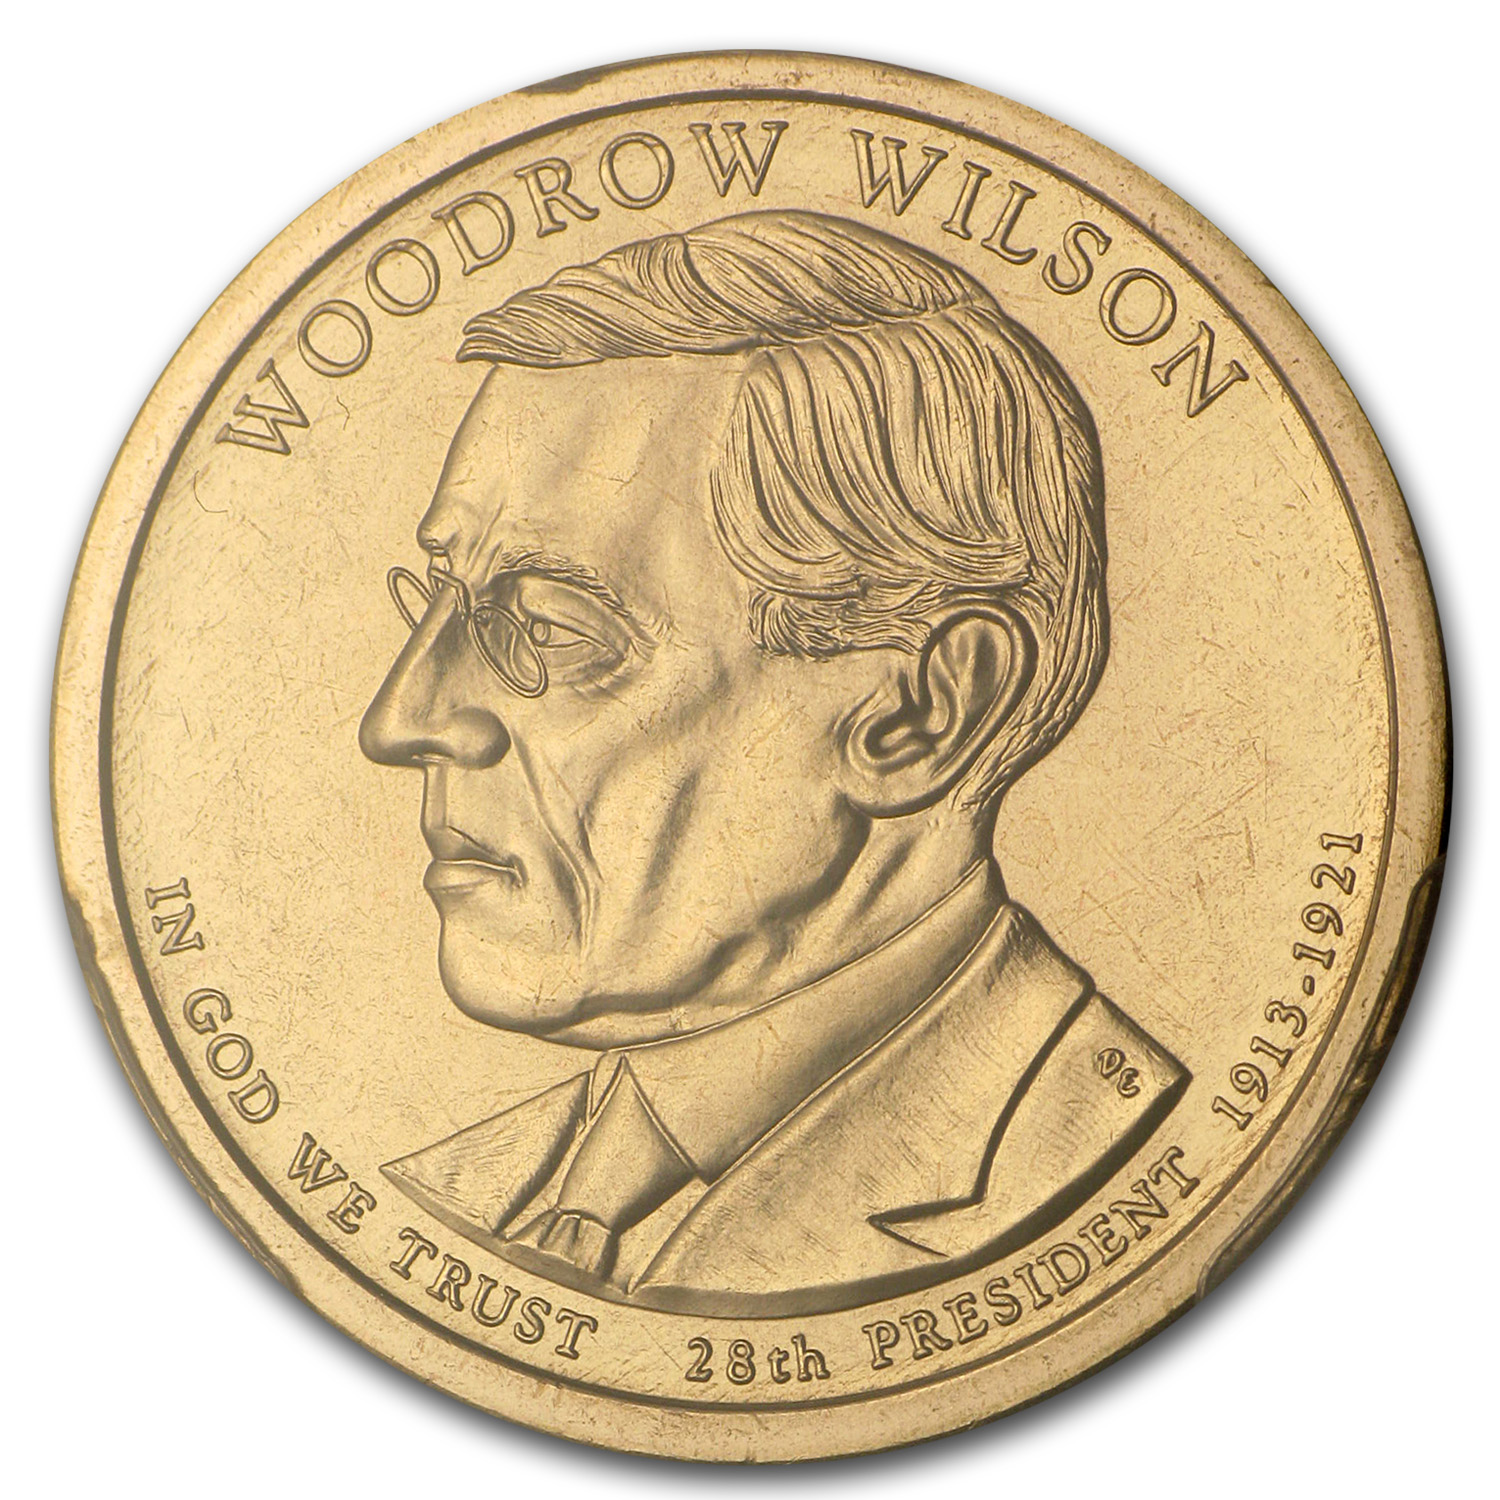 2013-P A Position Woodrow Wilson Presidential Dollar MS-68 PCGS